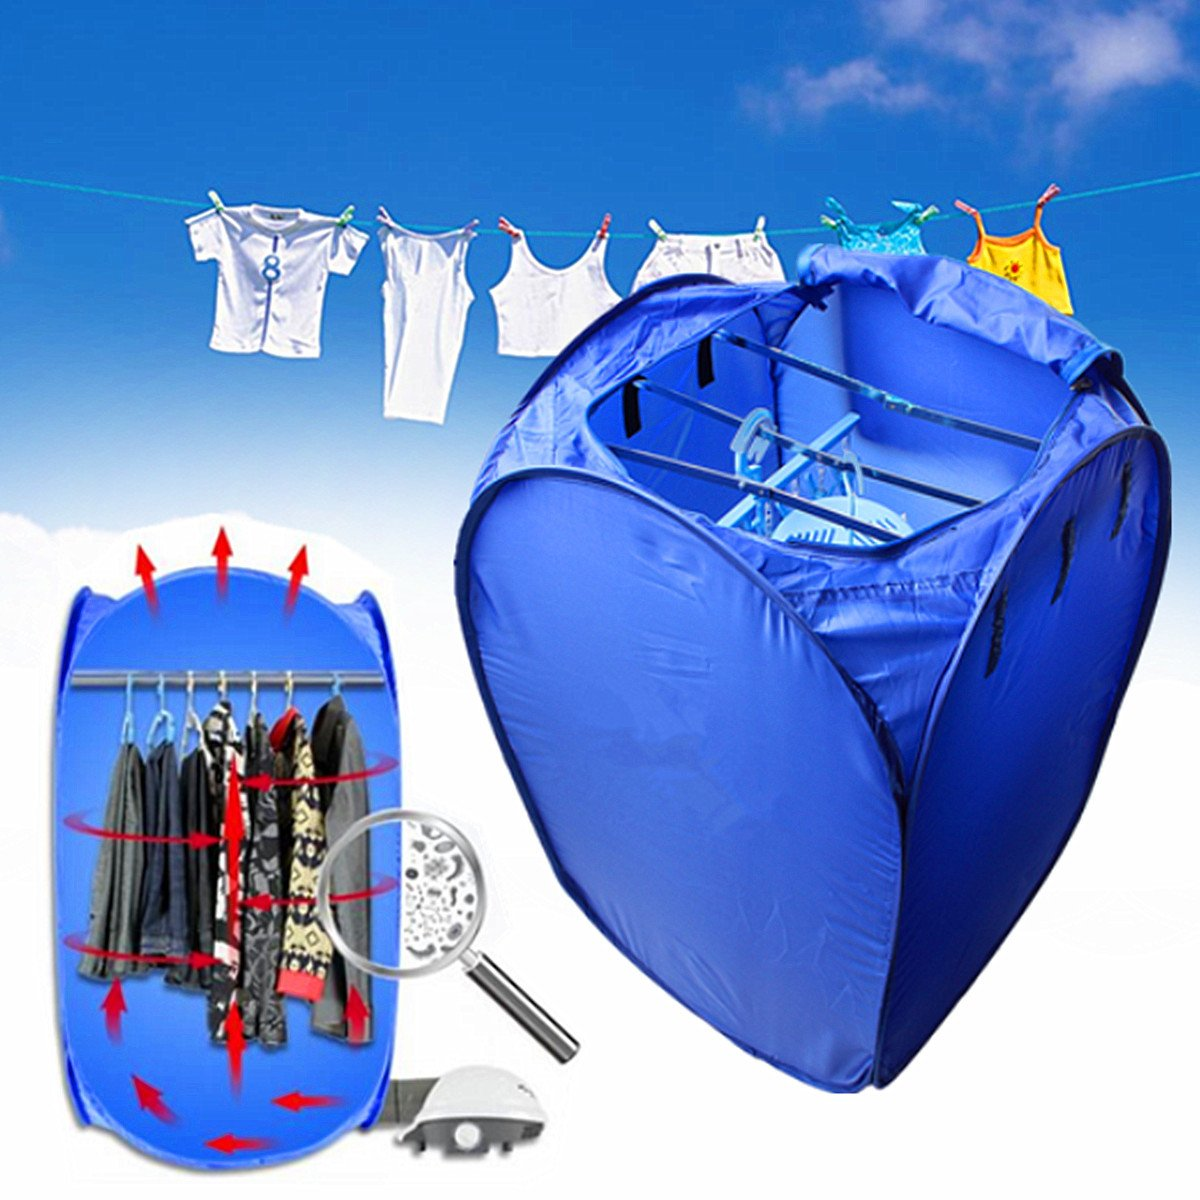 Inovey 800W Portable Electric Air Clothes Dryer Folding Fast Drying Machine Bag Box